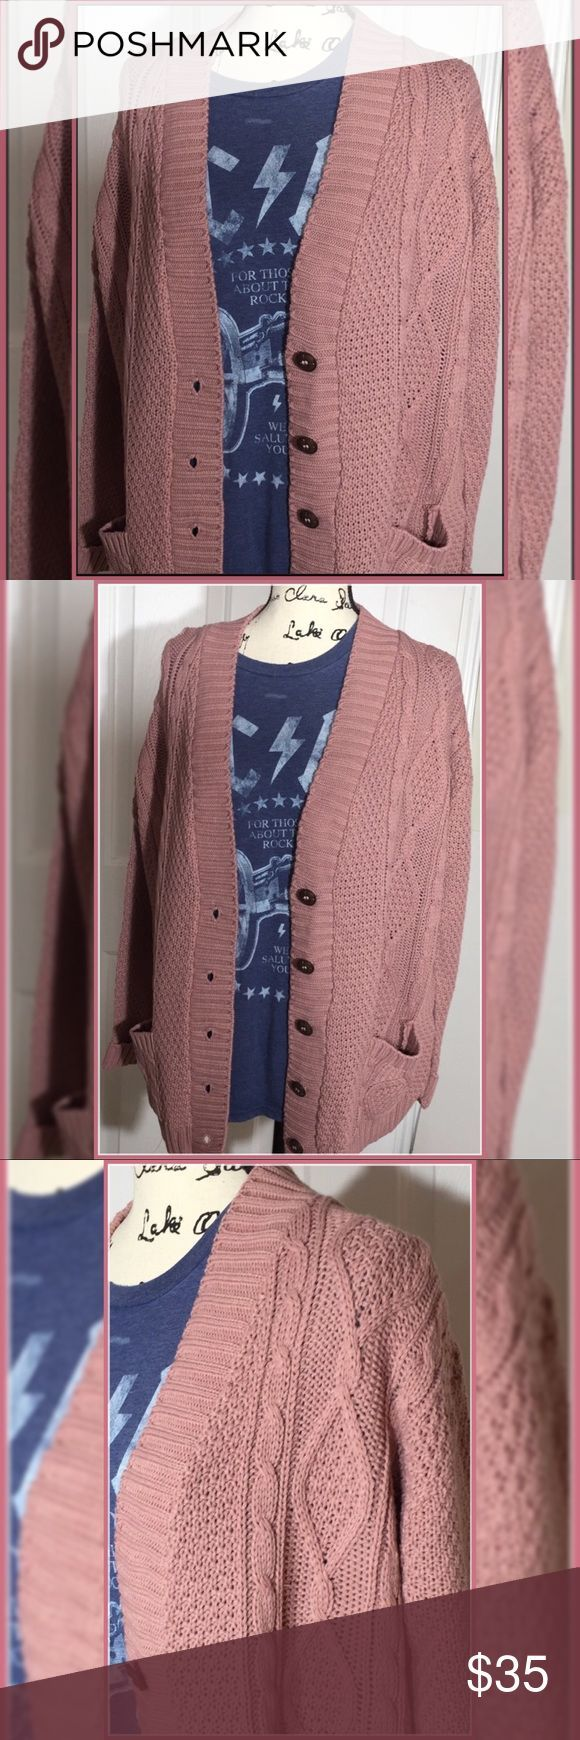 "NEW #Cardigans #Rose #Boyfriend #Button #Up #Sweater #M/L #NEW! #A #great #staple #for #layering #and #keeping #in #fashion #through #out #season. #Rose #is #the #color #of #this #listing. #Available #in #cream #and #stone #in #my #closet, #same #style. #M/L #measures #shoulders #21"", #Sleeves #23"", #Length #28"", #Bust #23"" #cuffed #sleeves #pockets #Button #Up! # #Nail #new #season #knitwear #..."